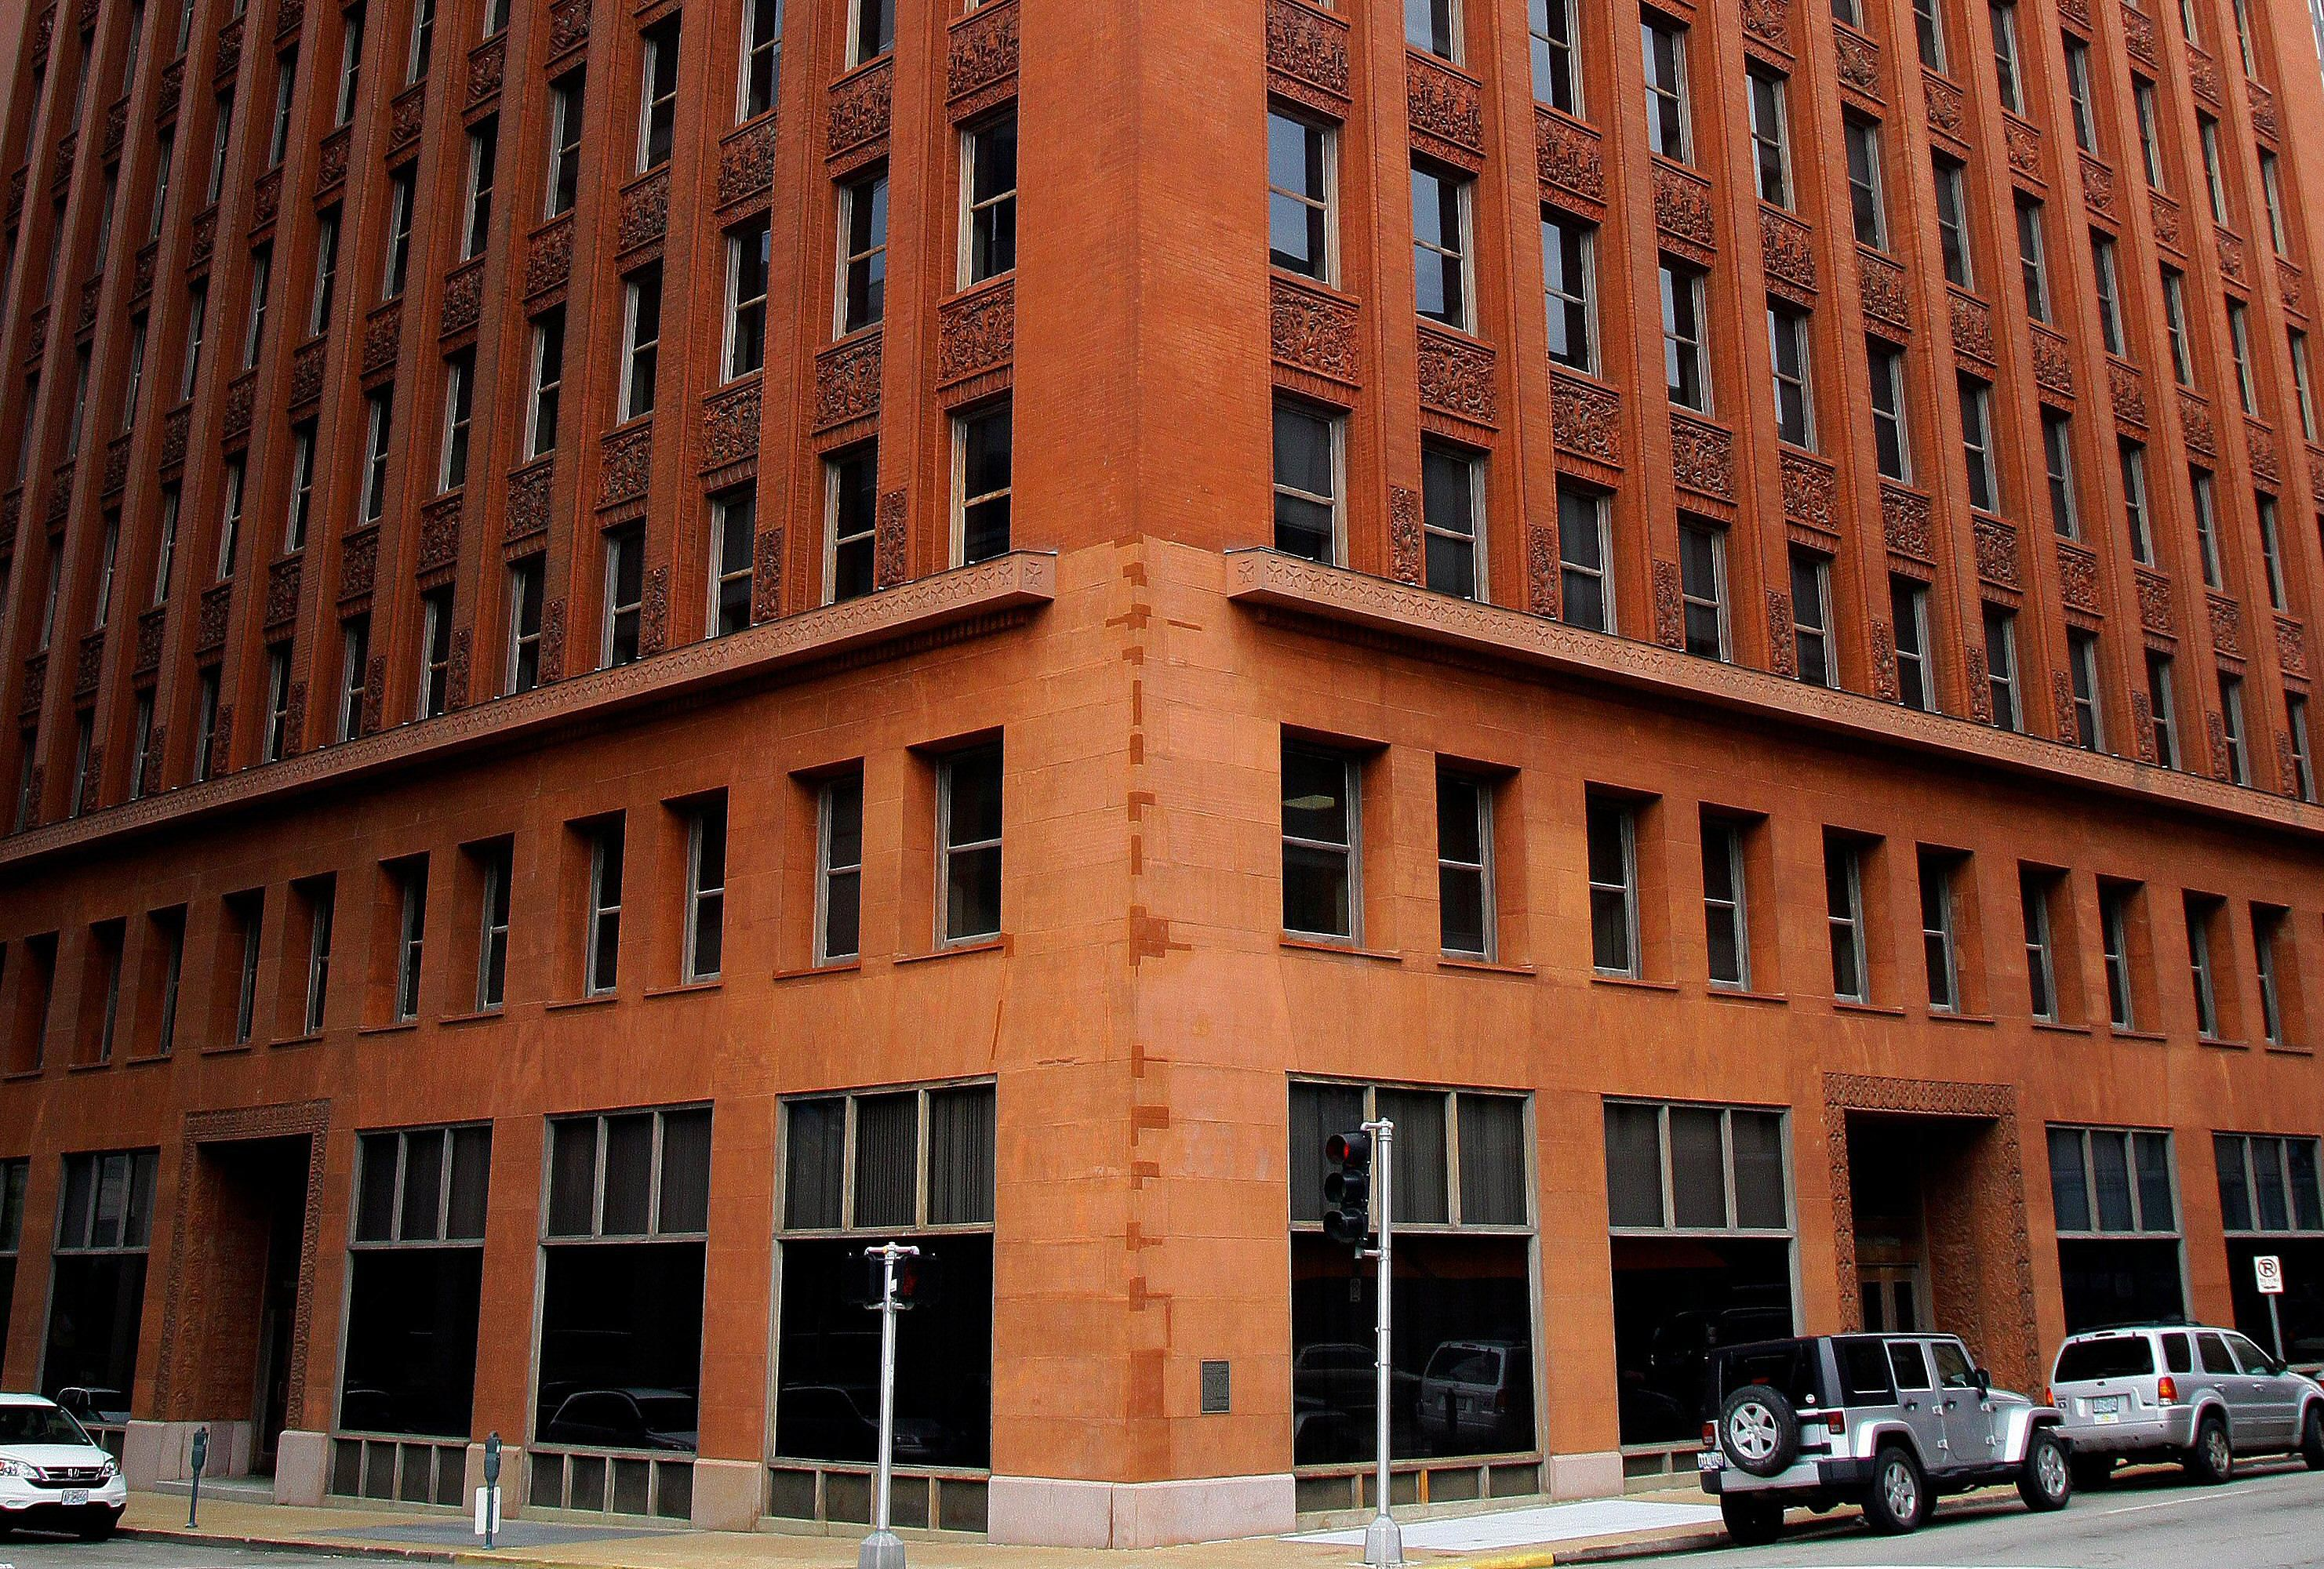 First floors of the Wainwright Building in St. Louis, Missouri